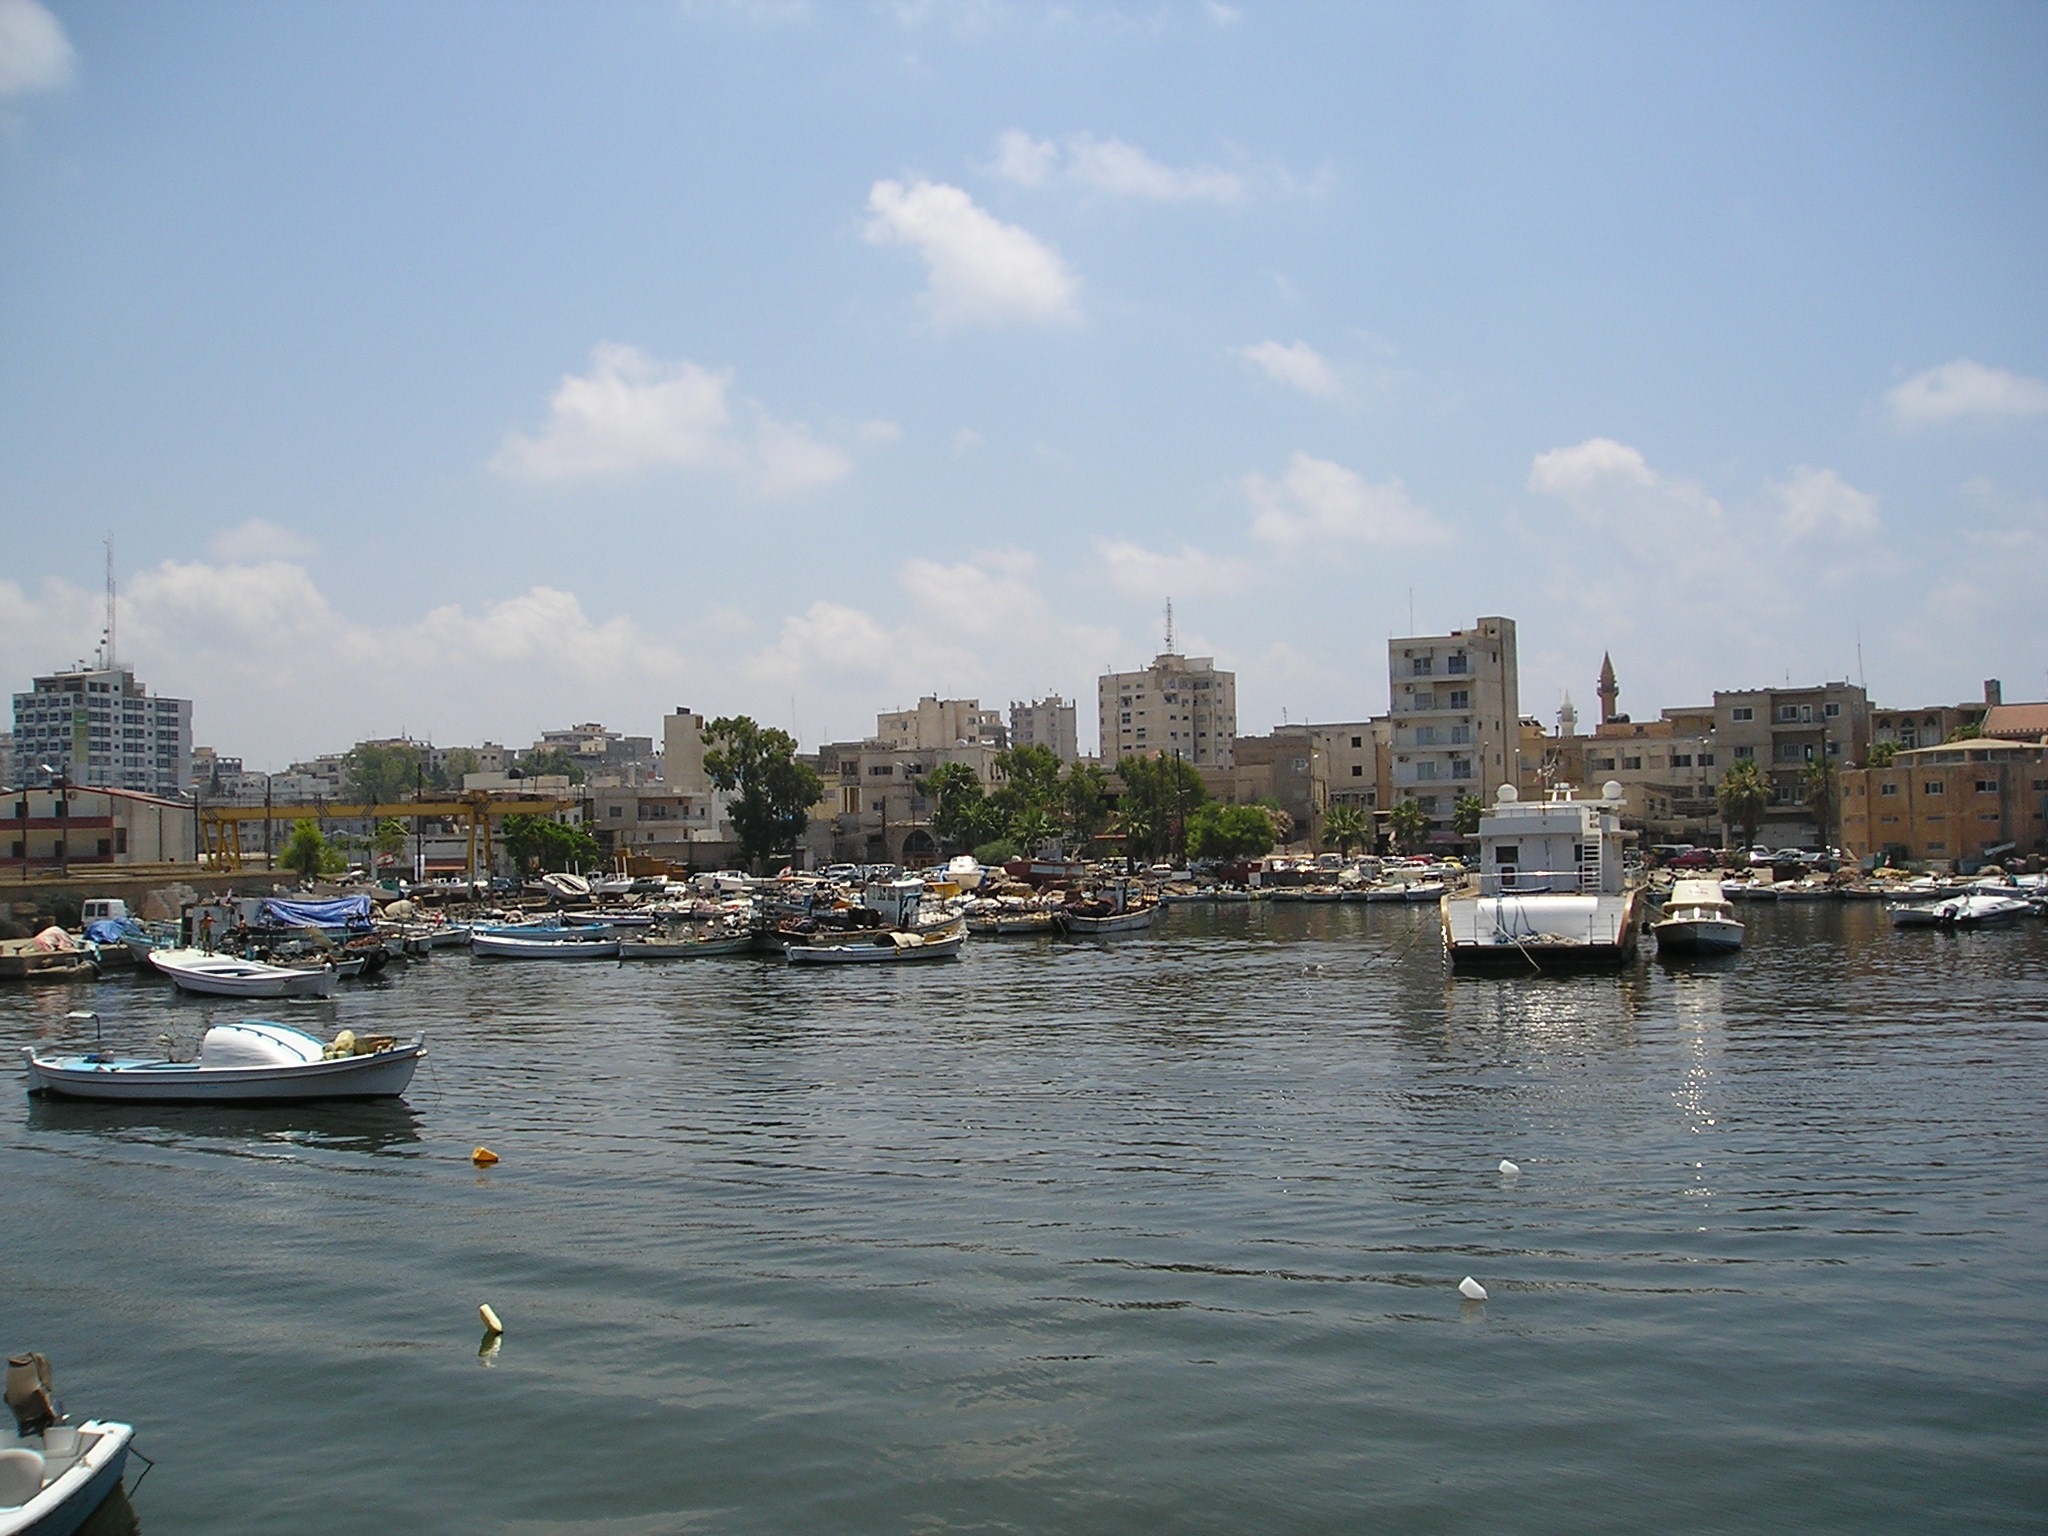 Tyre was once a poweful city-state, but is now just a city in Lebanon.